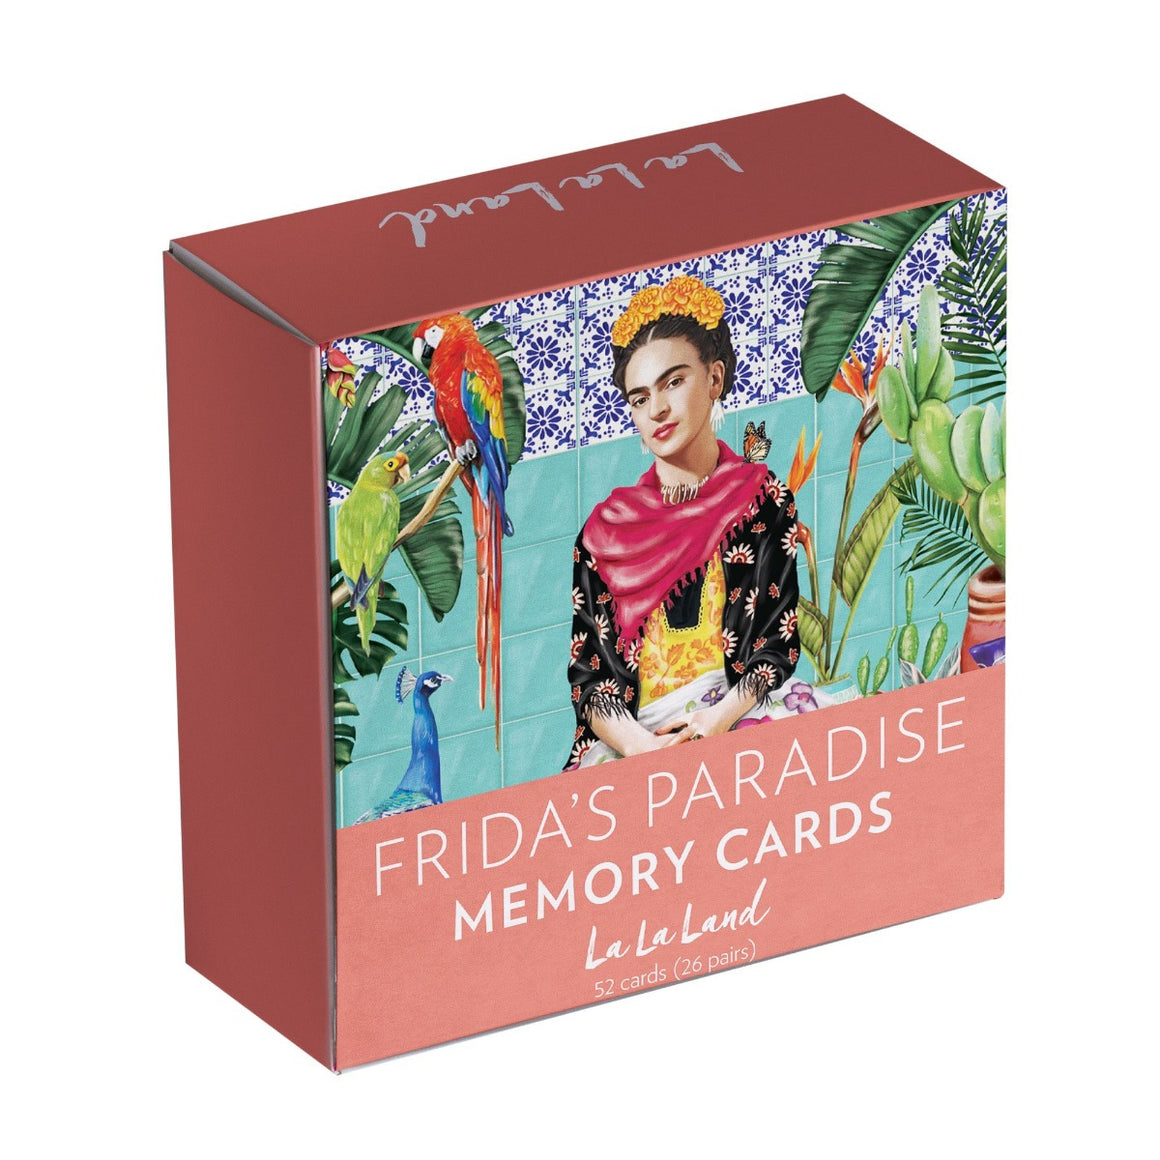 Pink Packaging Box featuring a illustration of the Mexican painter Frida Kahlo surrounded by plants, cacti, tropical birds such as parrots and a peacock